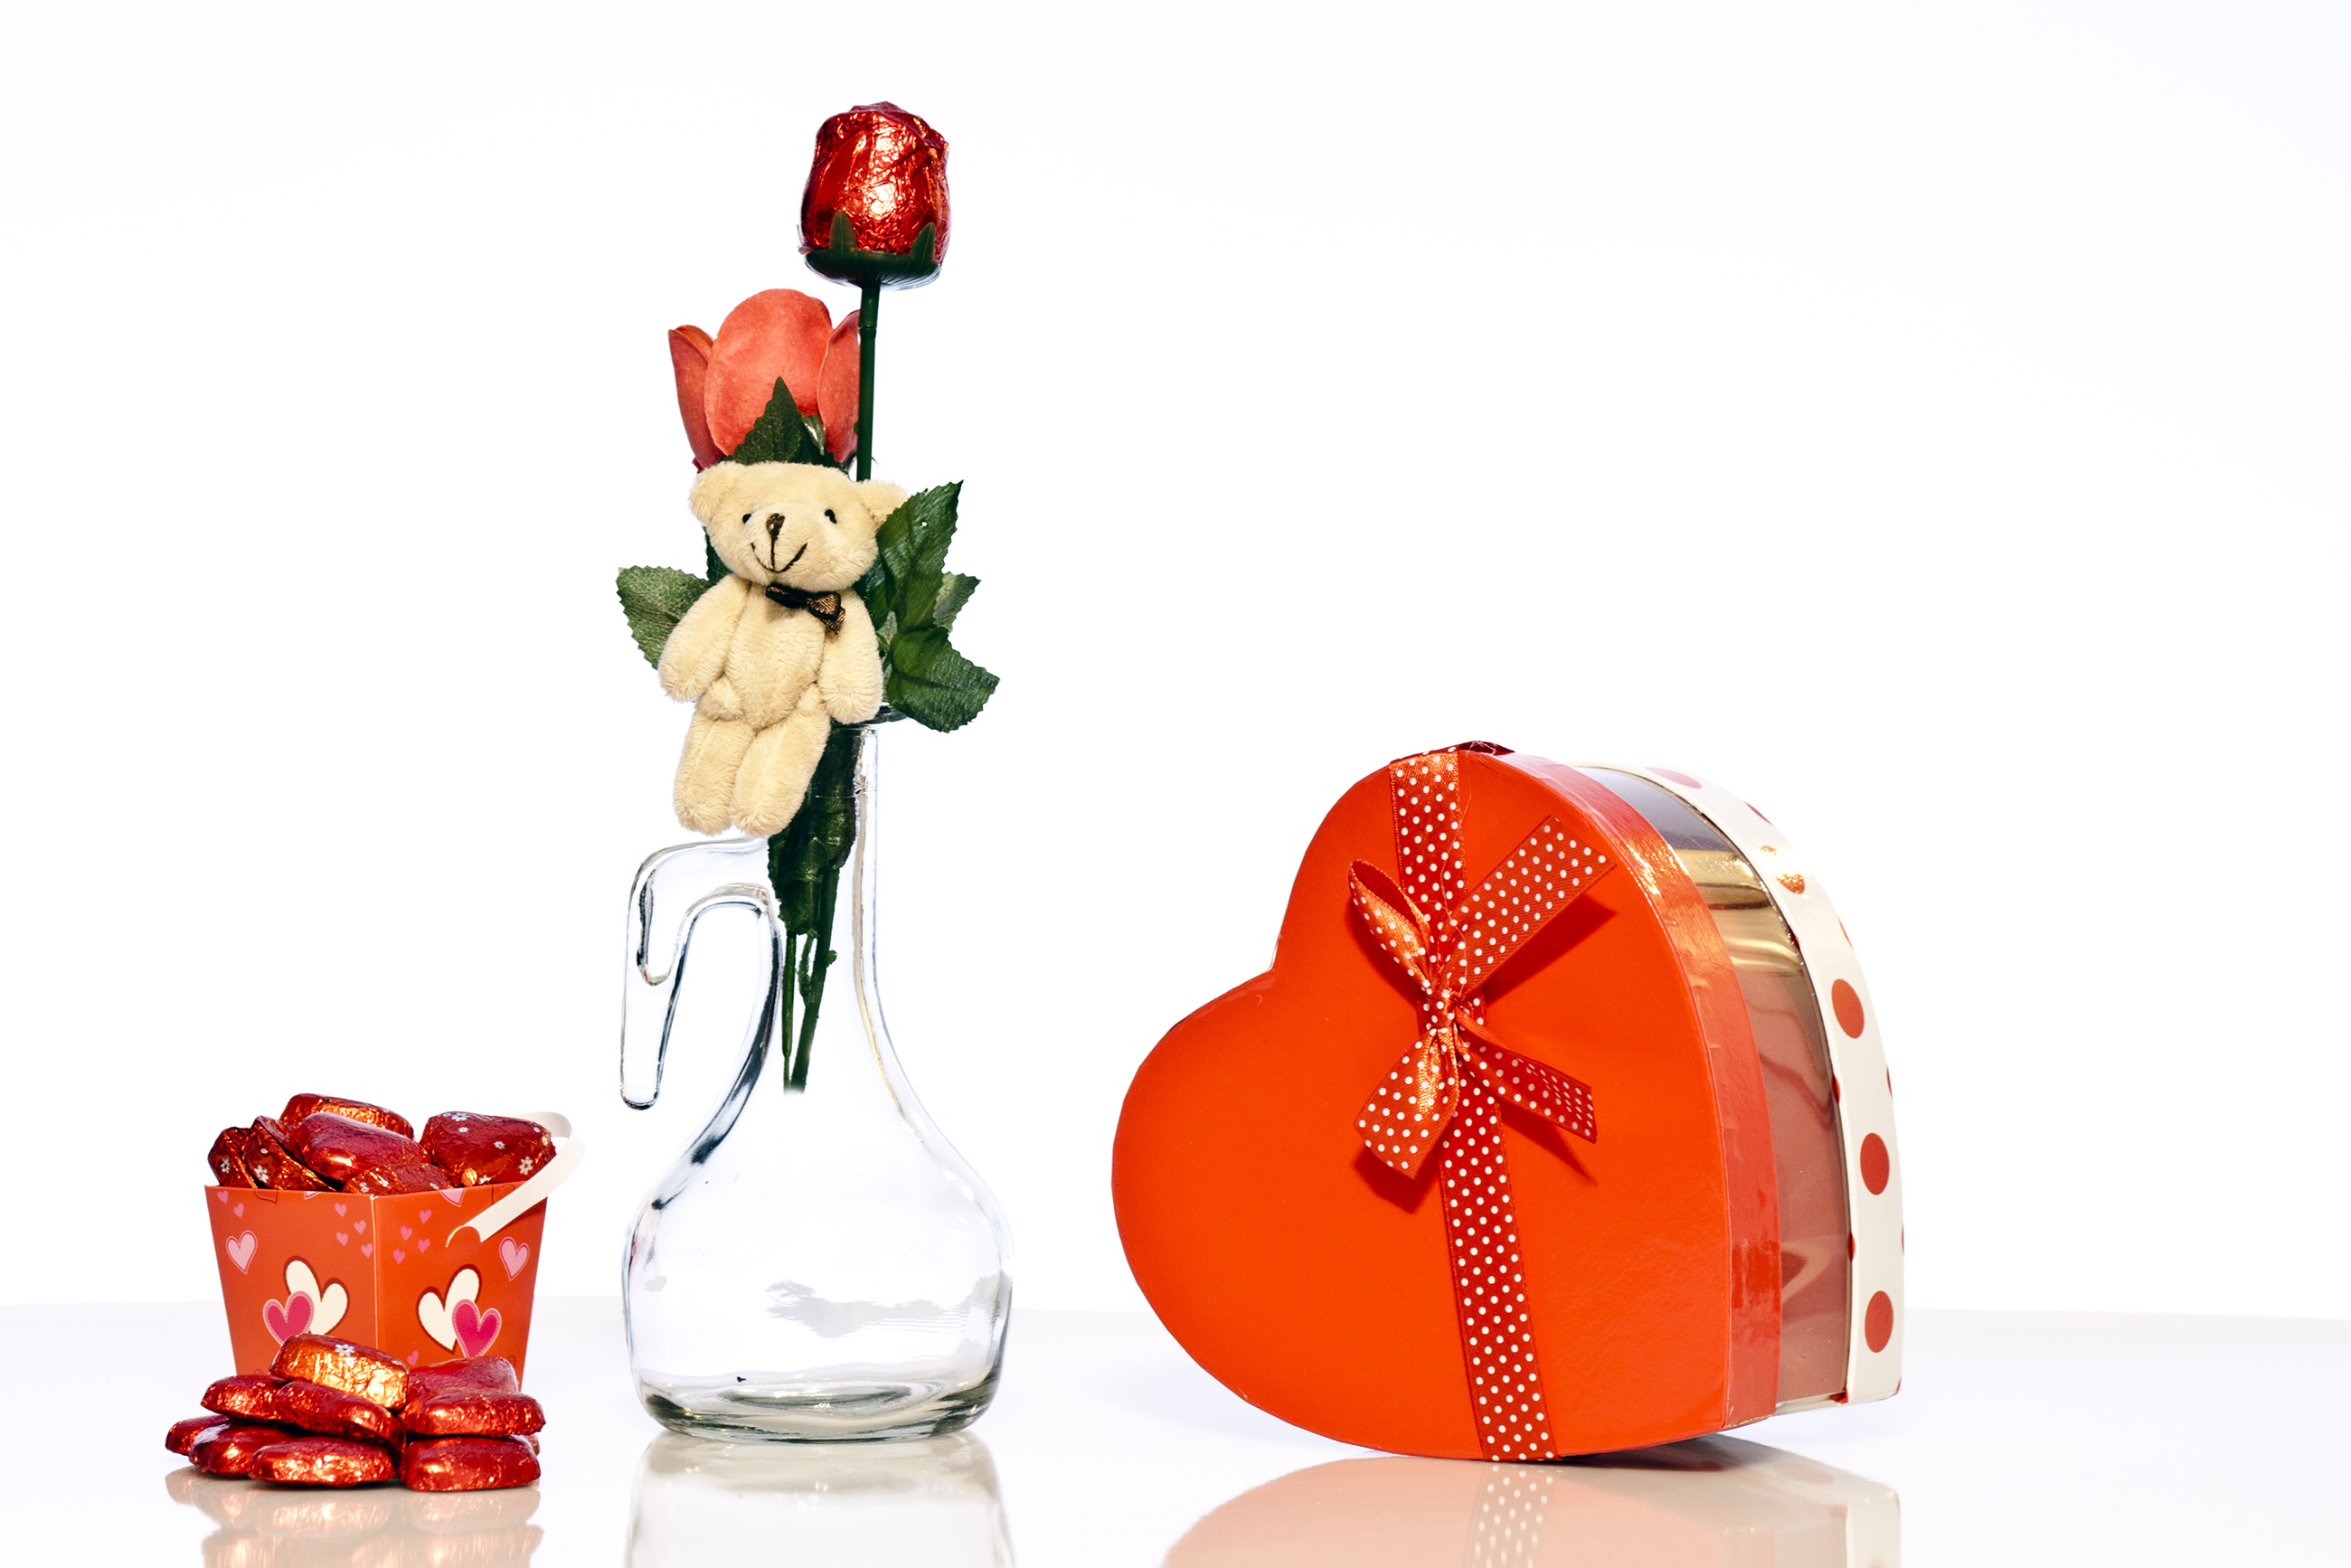 Gifts for valentines day photo